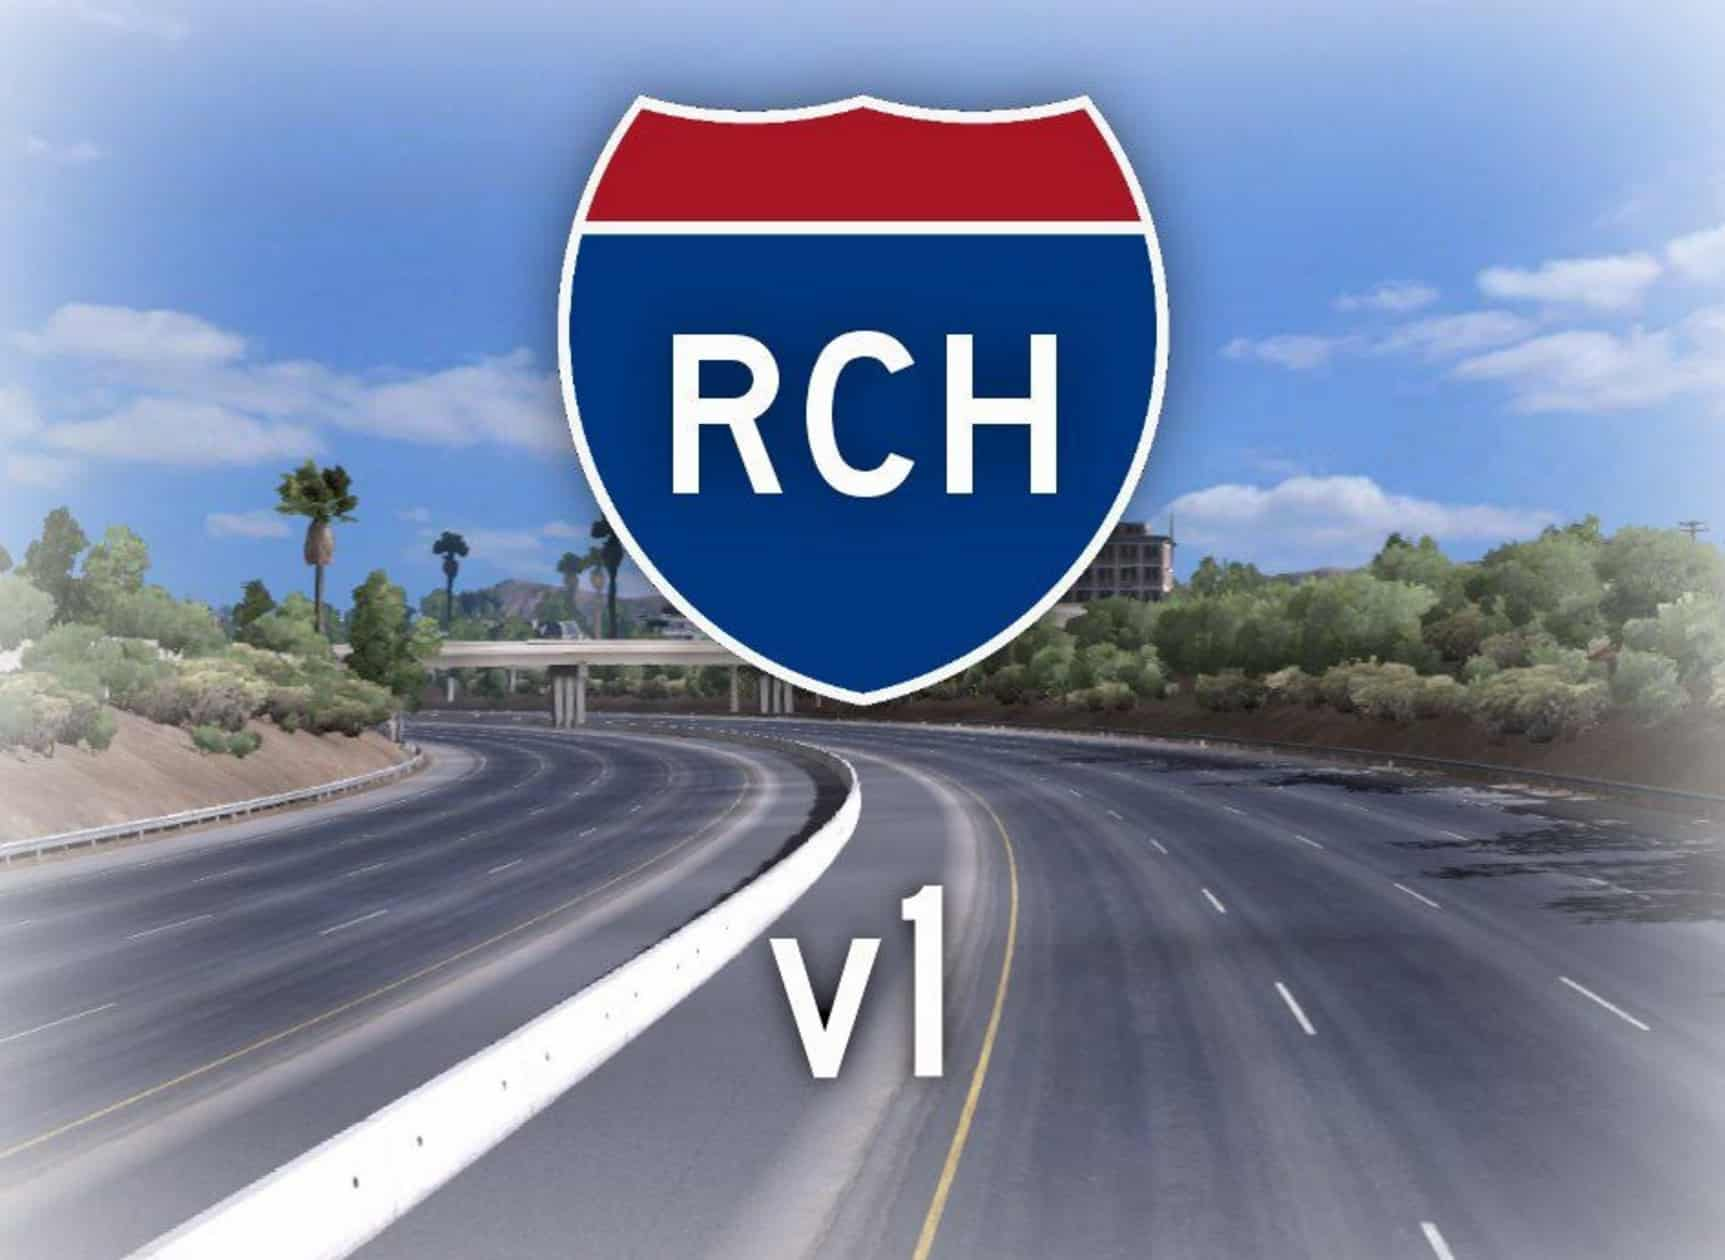 Realistic California Highways v10 Map Realistic California